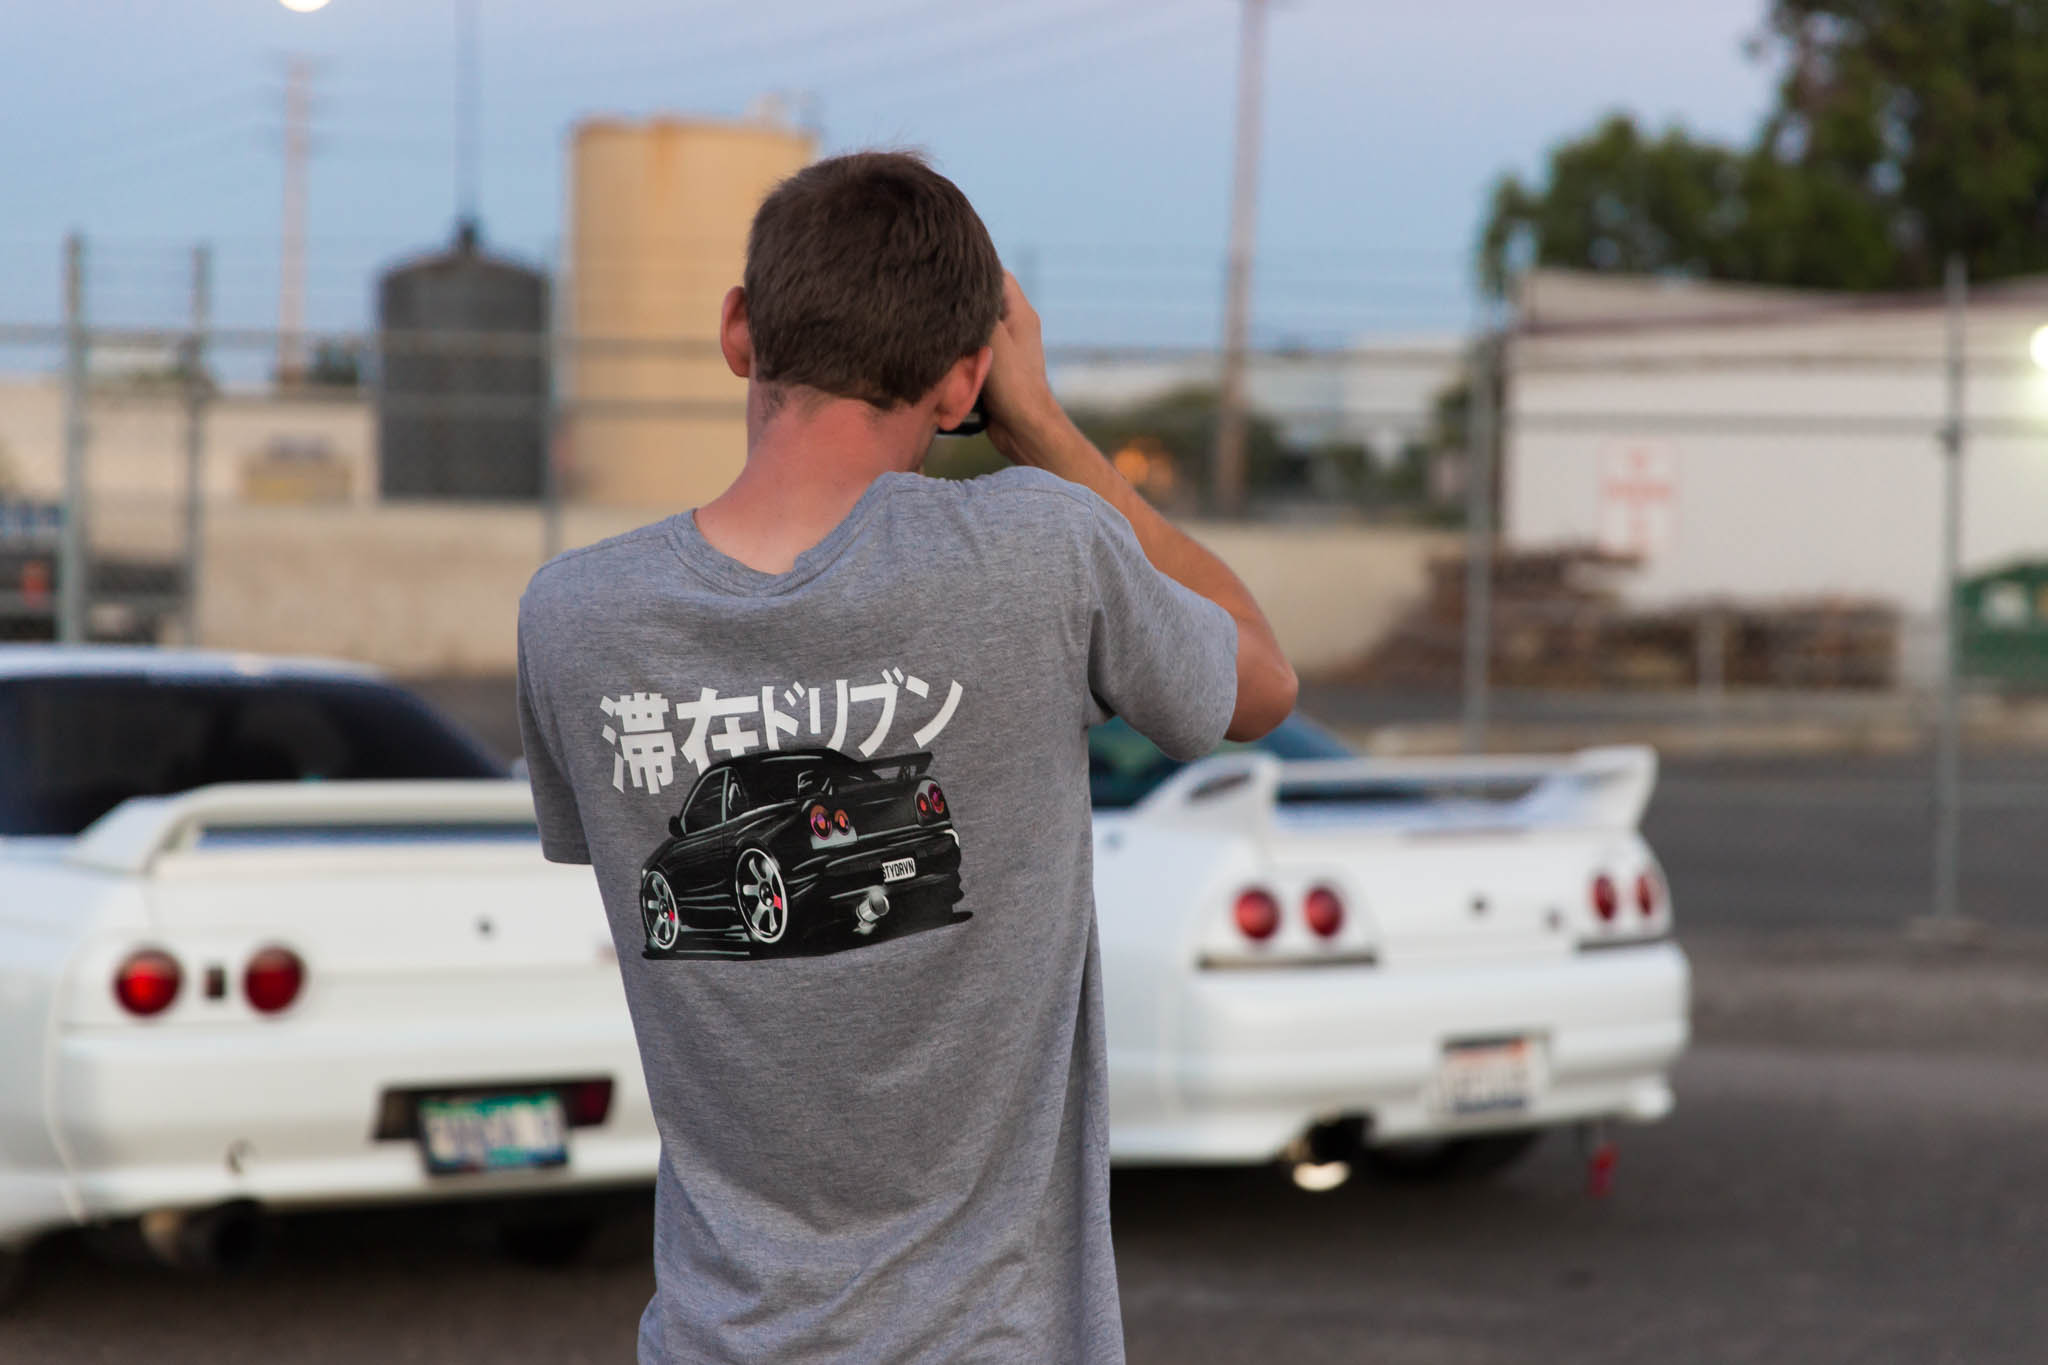 IMPORTED R34 T - WAS $40 NOW $20 - LIMITED STOCK REMAINING